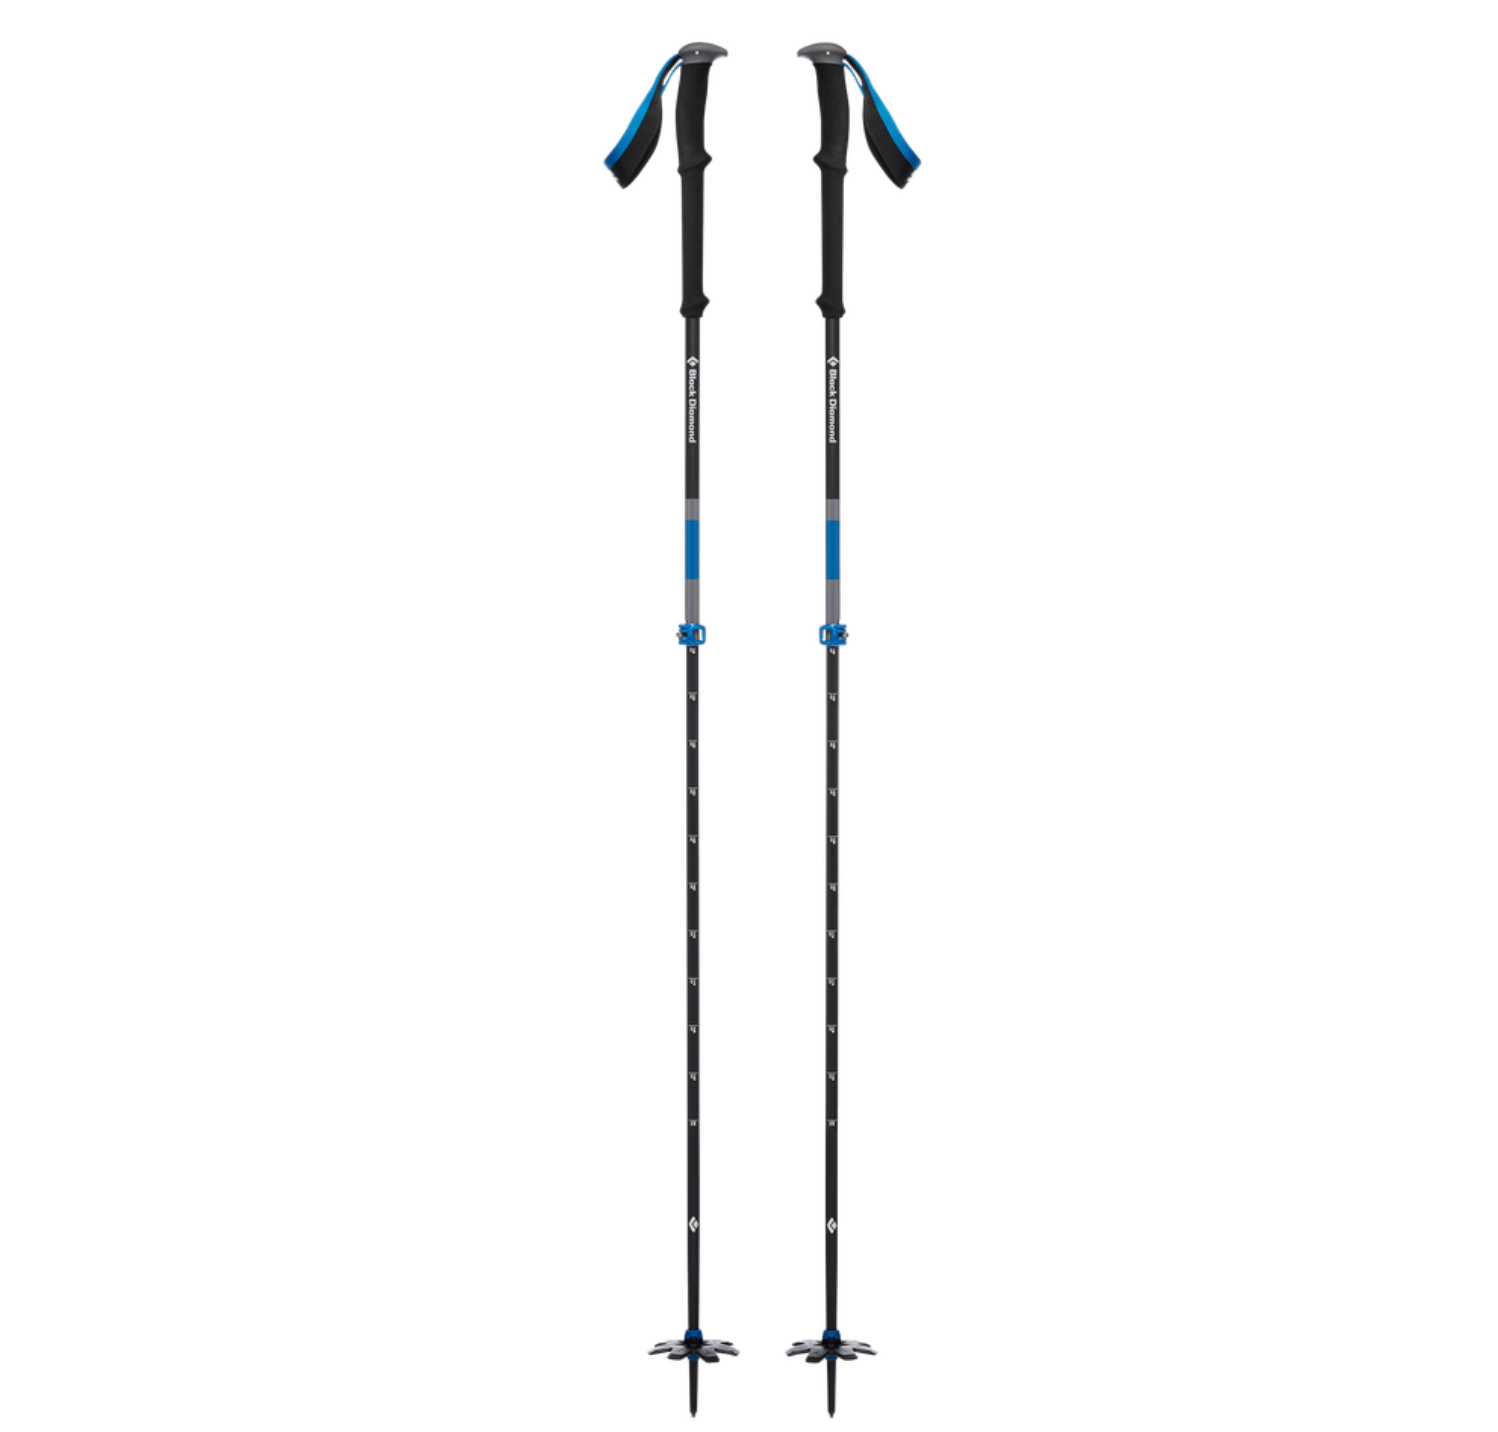 Black Diamond Expedition Pro 2 Poles